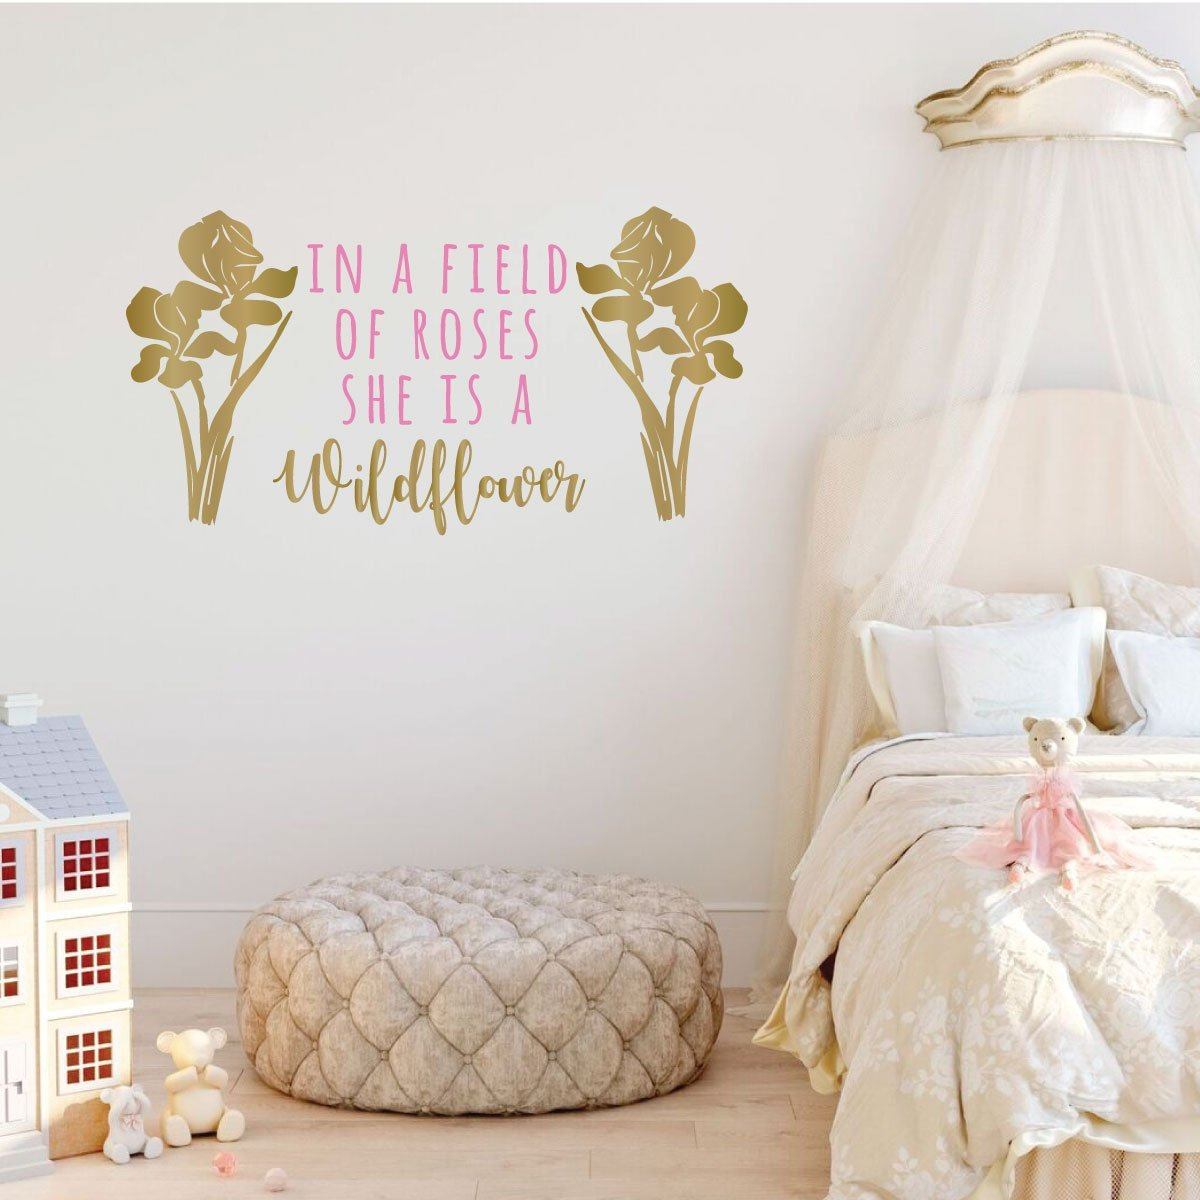 In a Field of Roses Home Decor v2 Vinyl Decal Wall Art Decor Sticker